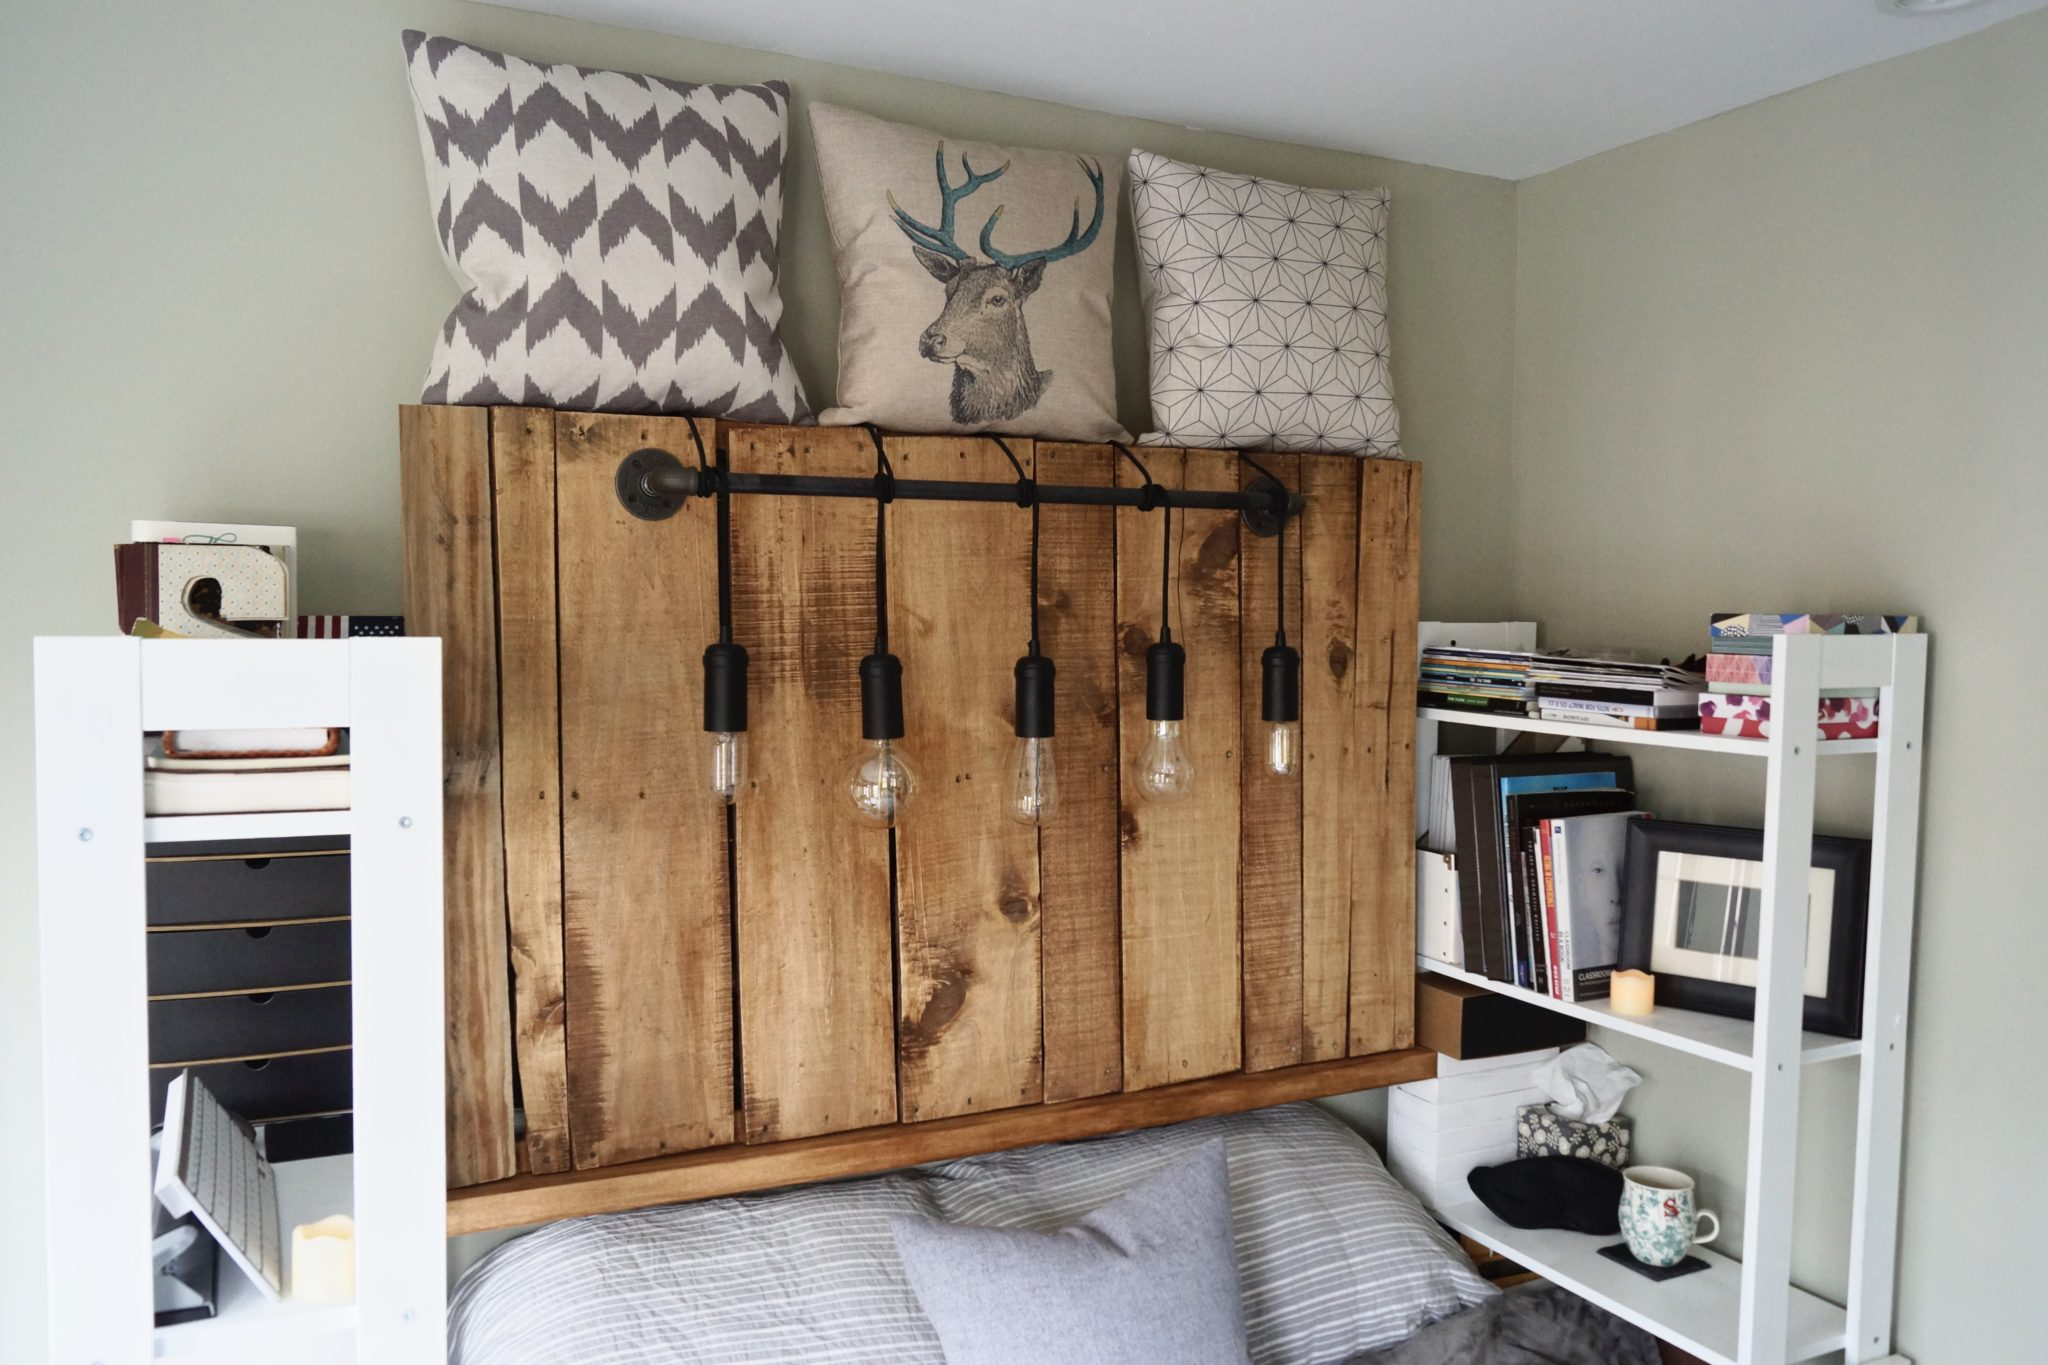 DIY Pallet Headboard - Edison Headboard - Edison Bulb - Reclaimed Wood - Do It Yourself Lighting - Bedroom - Design It Yourself - Galvanized Steel - Pendant Light - Woodworking - TheKillerLook.com - The Killer Look